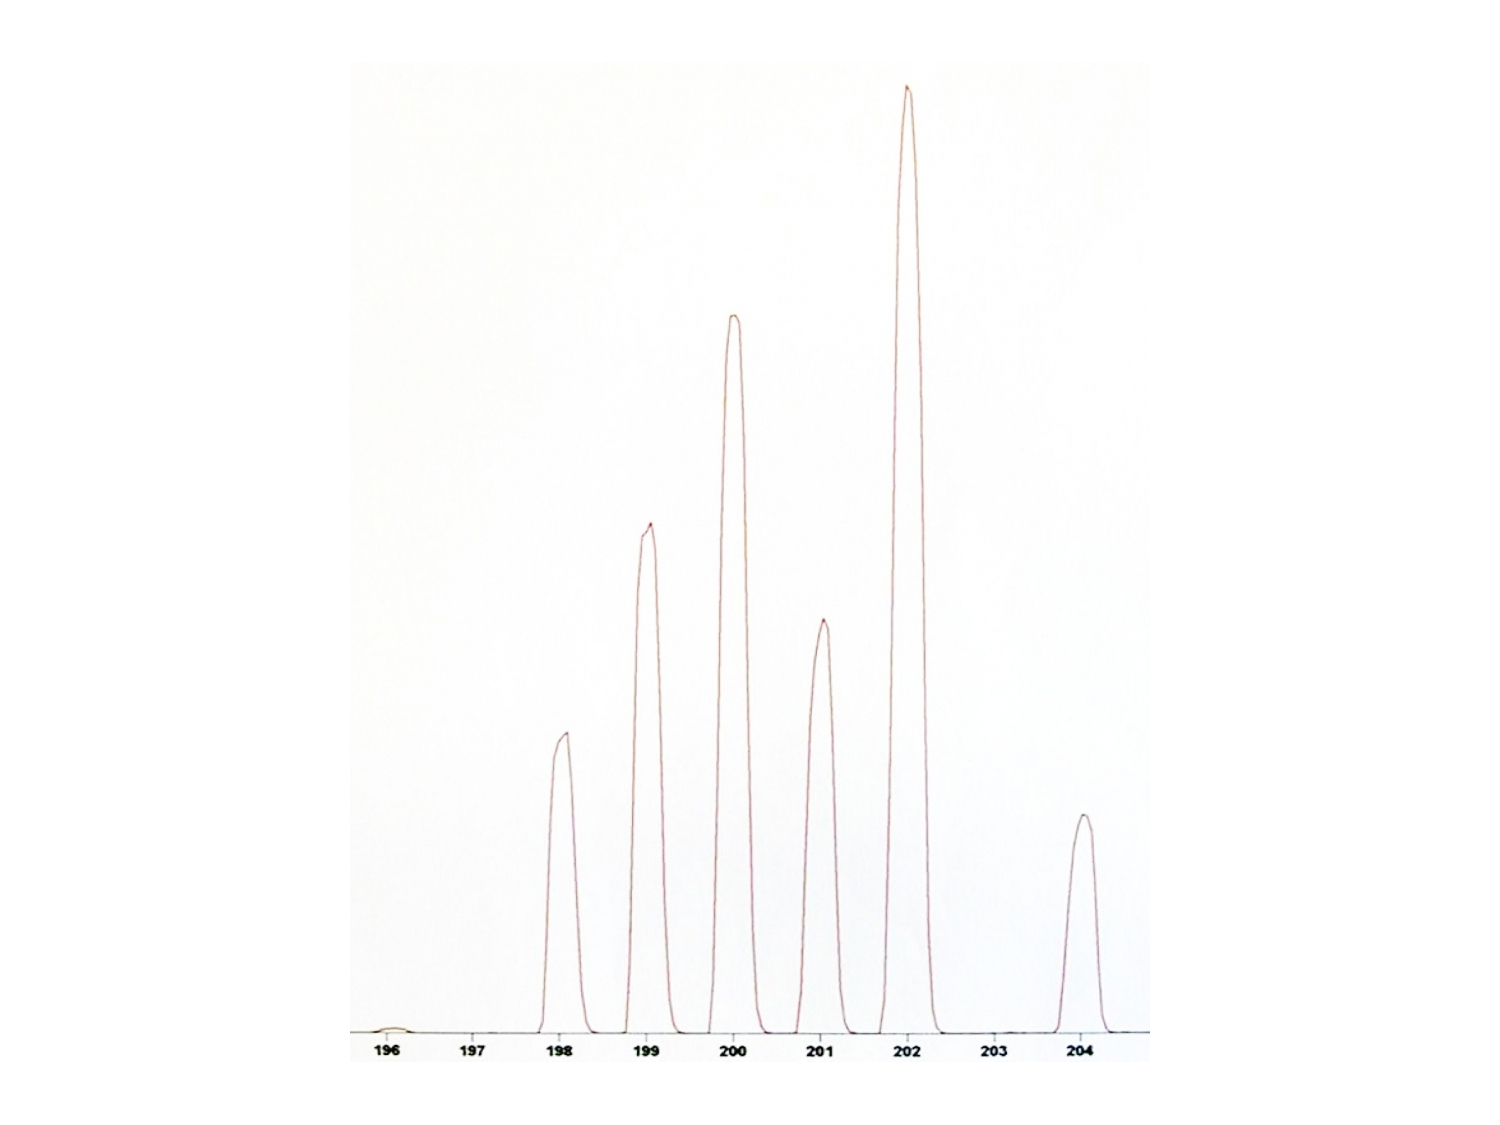 Spectogram of the seven Hg isotopes